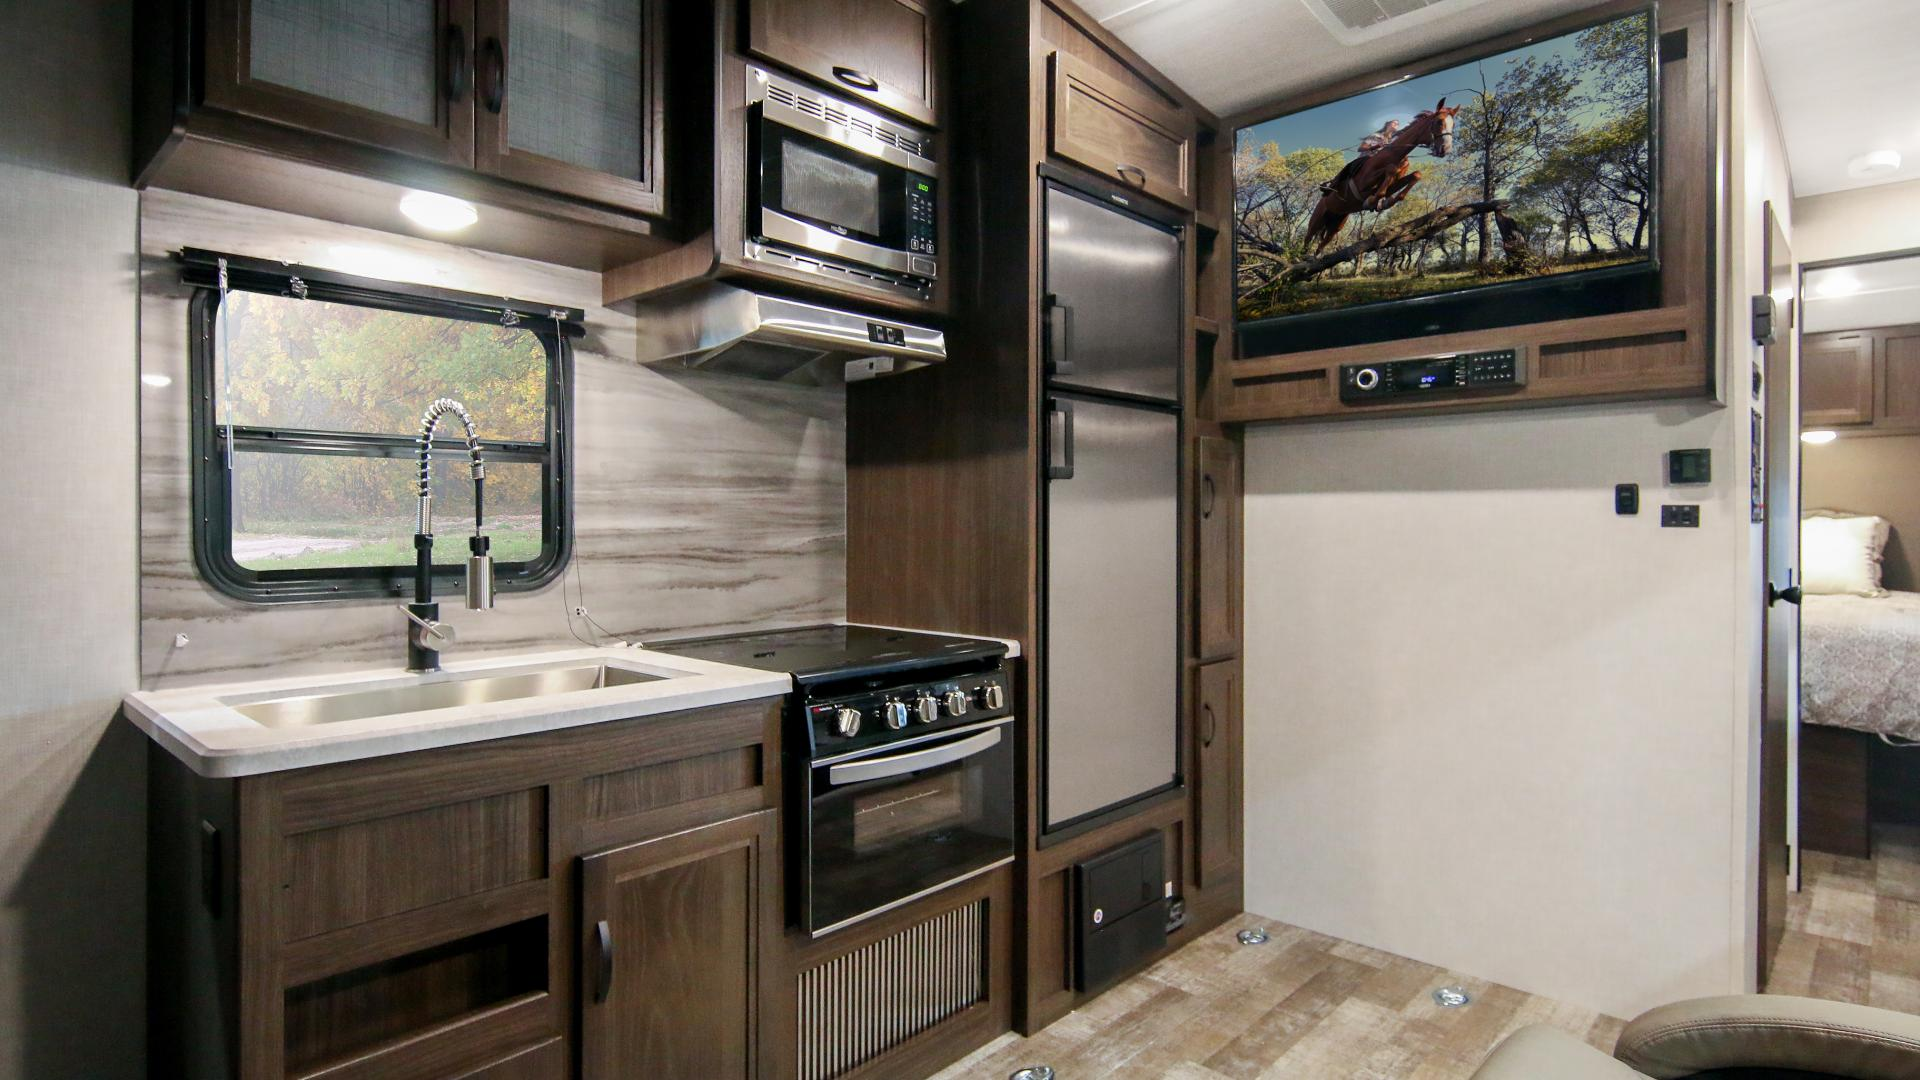 Winnebago Spyder galley full view, including entertainement area